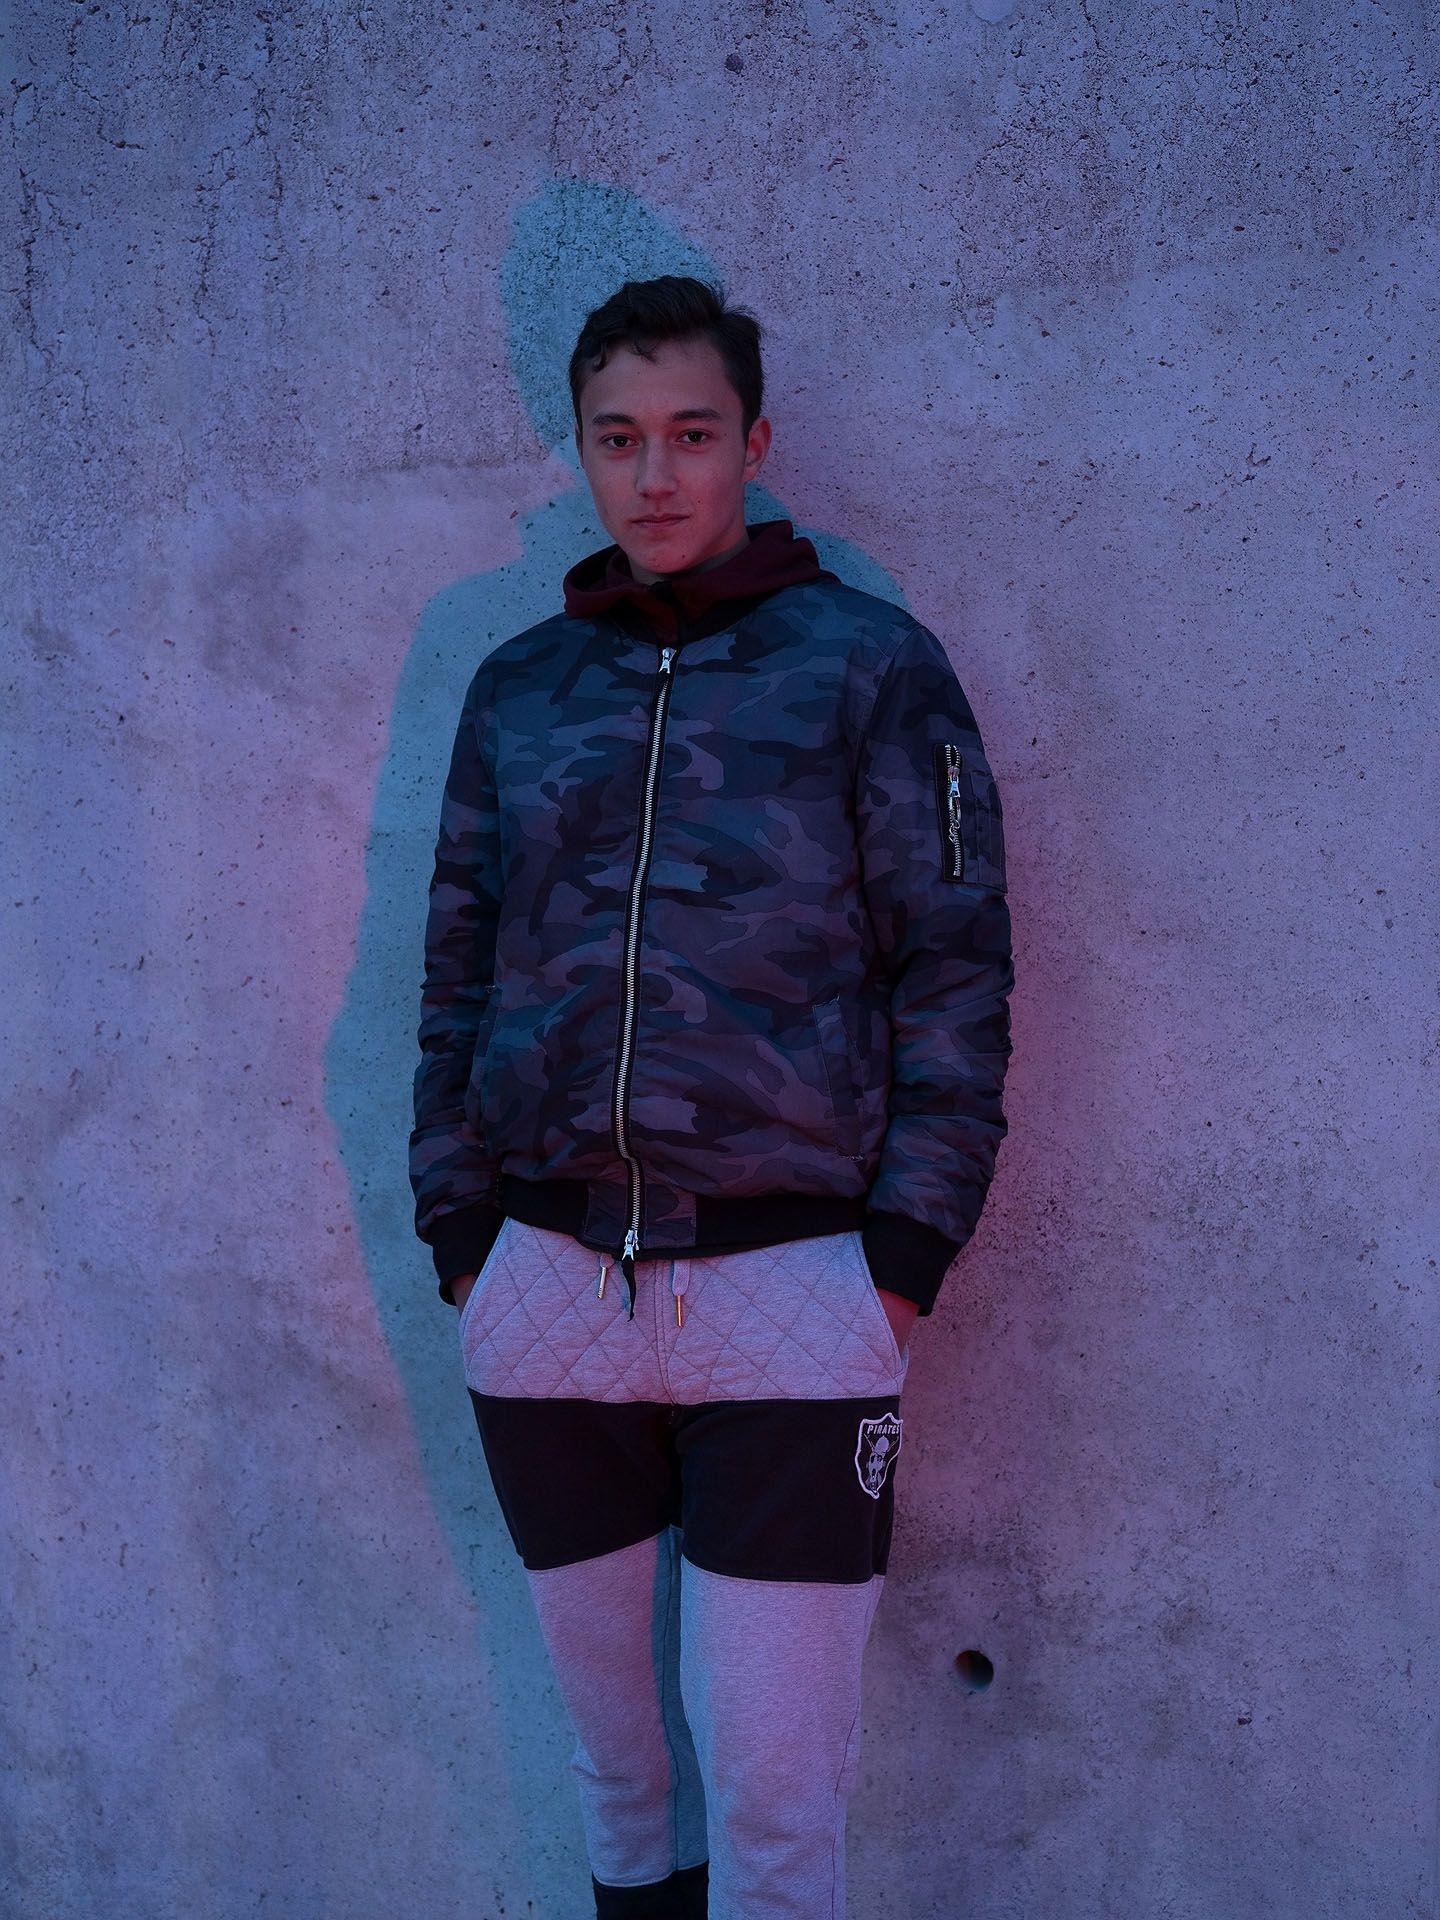 young teenage boy posing against wall in lightly red light by Guillaume Simoneau in Saint-Pierre-et-Miquelon for M le mag Le Monde